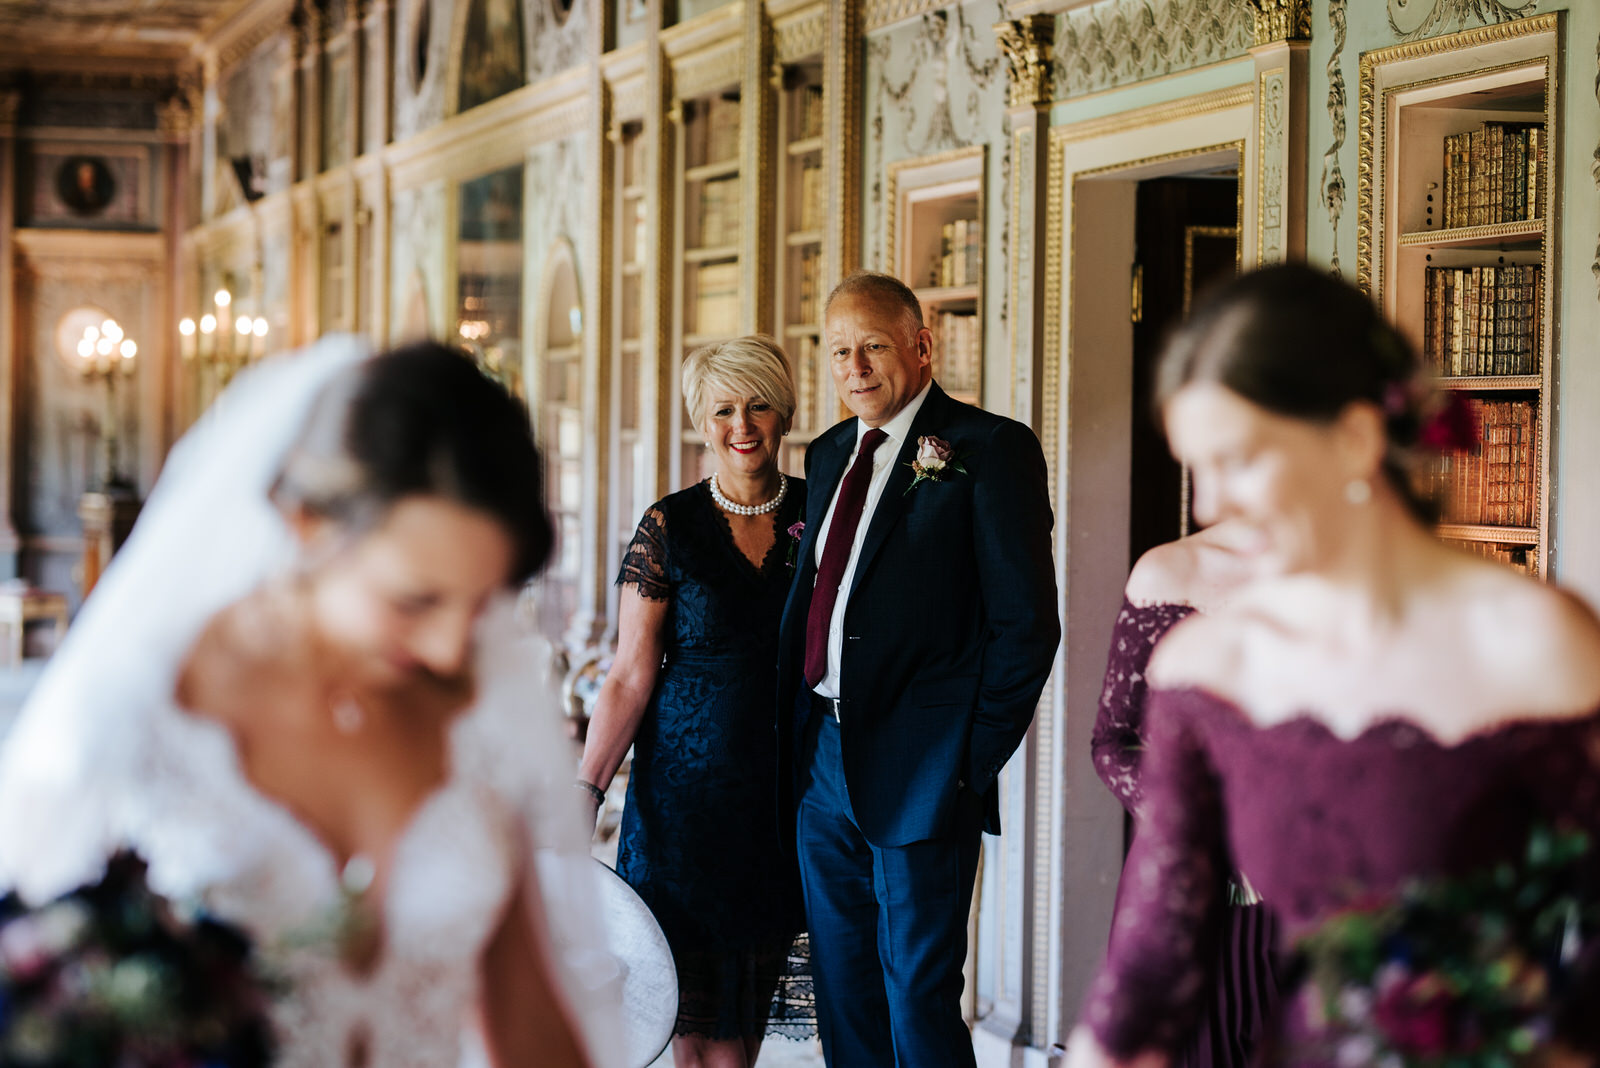 Bride's mum and step-dad look lovingly at bride and admire her